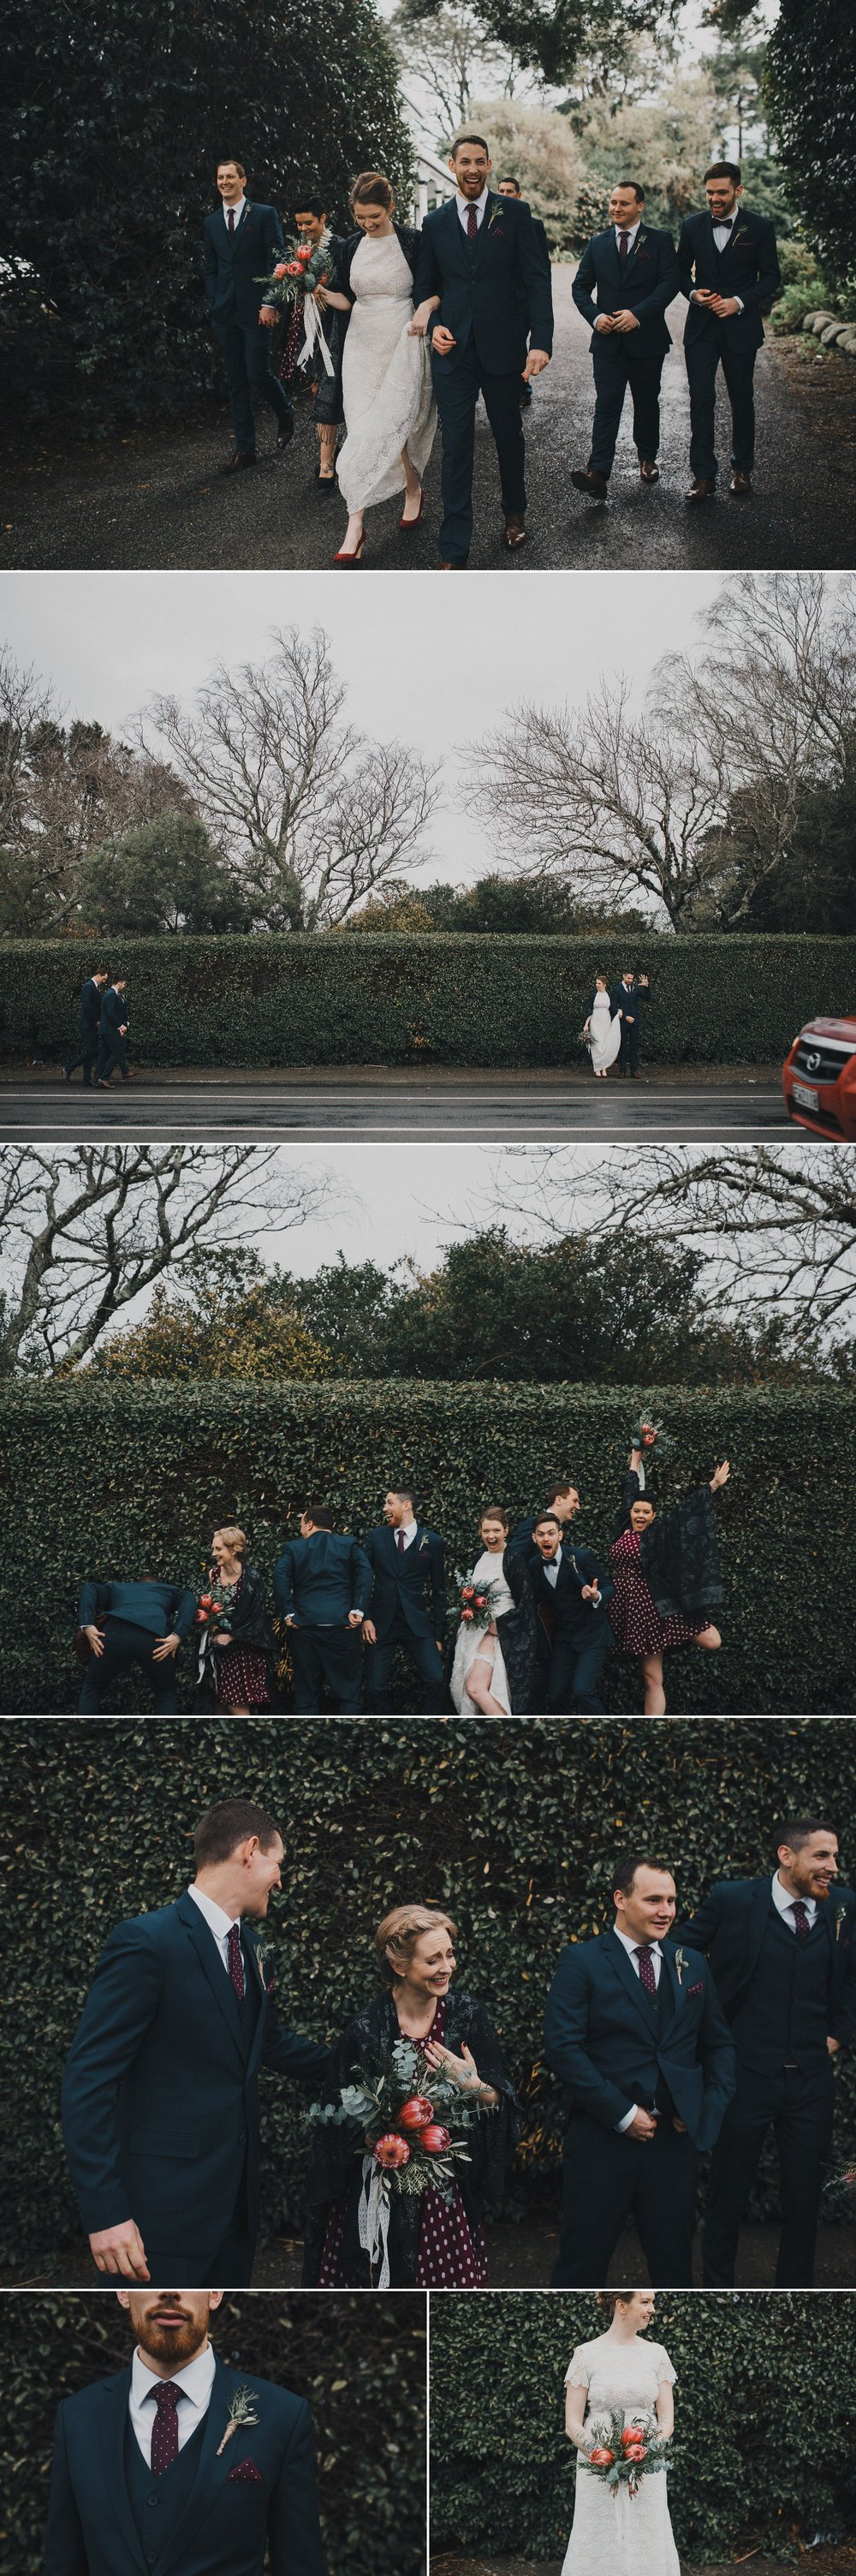 Bridal Party Fun Wedding Photos